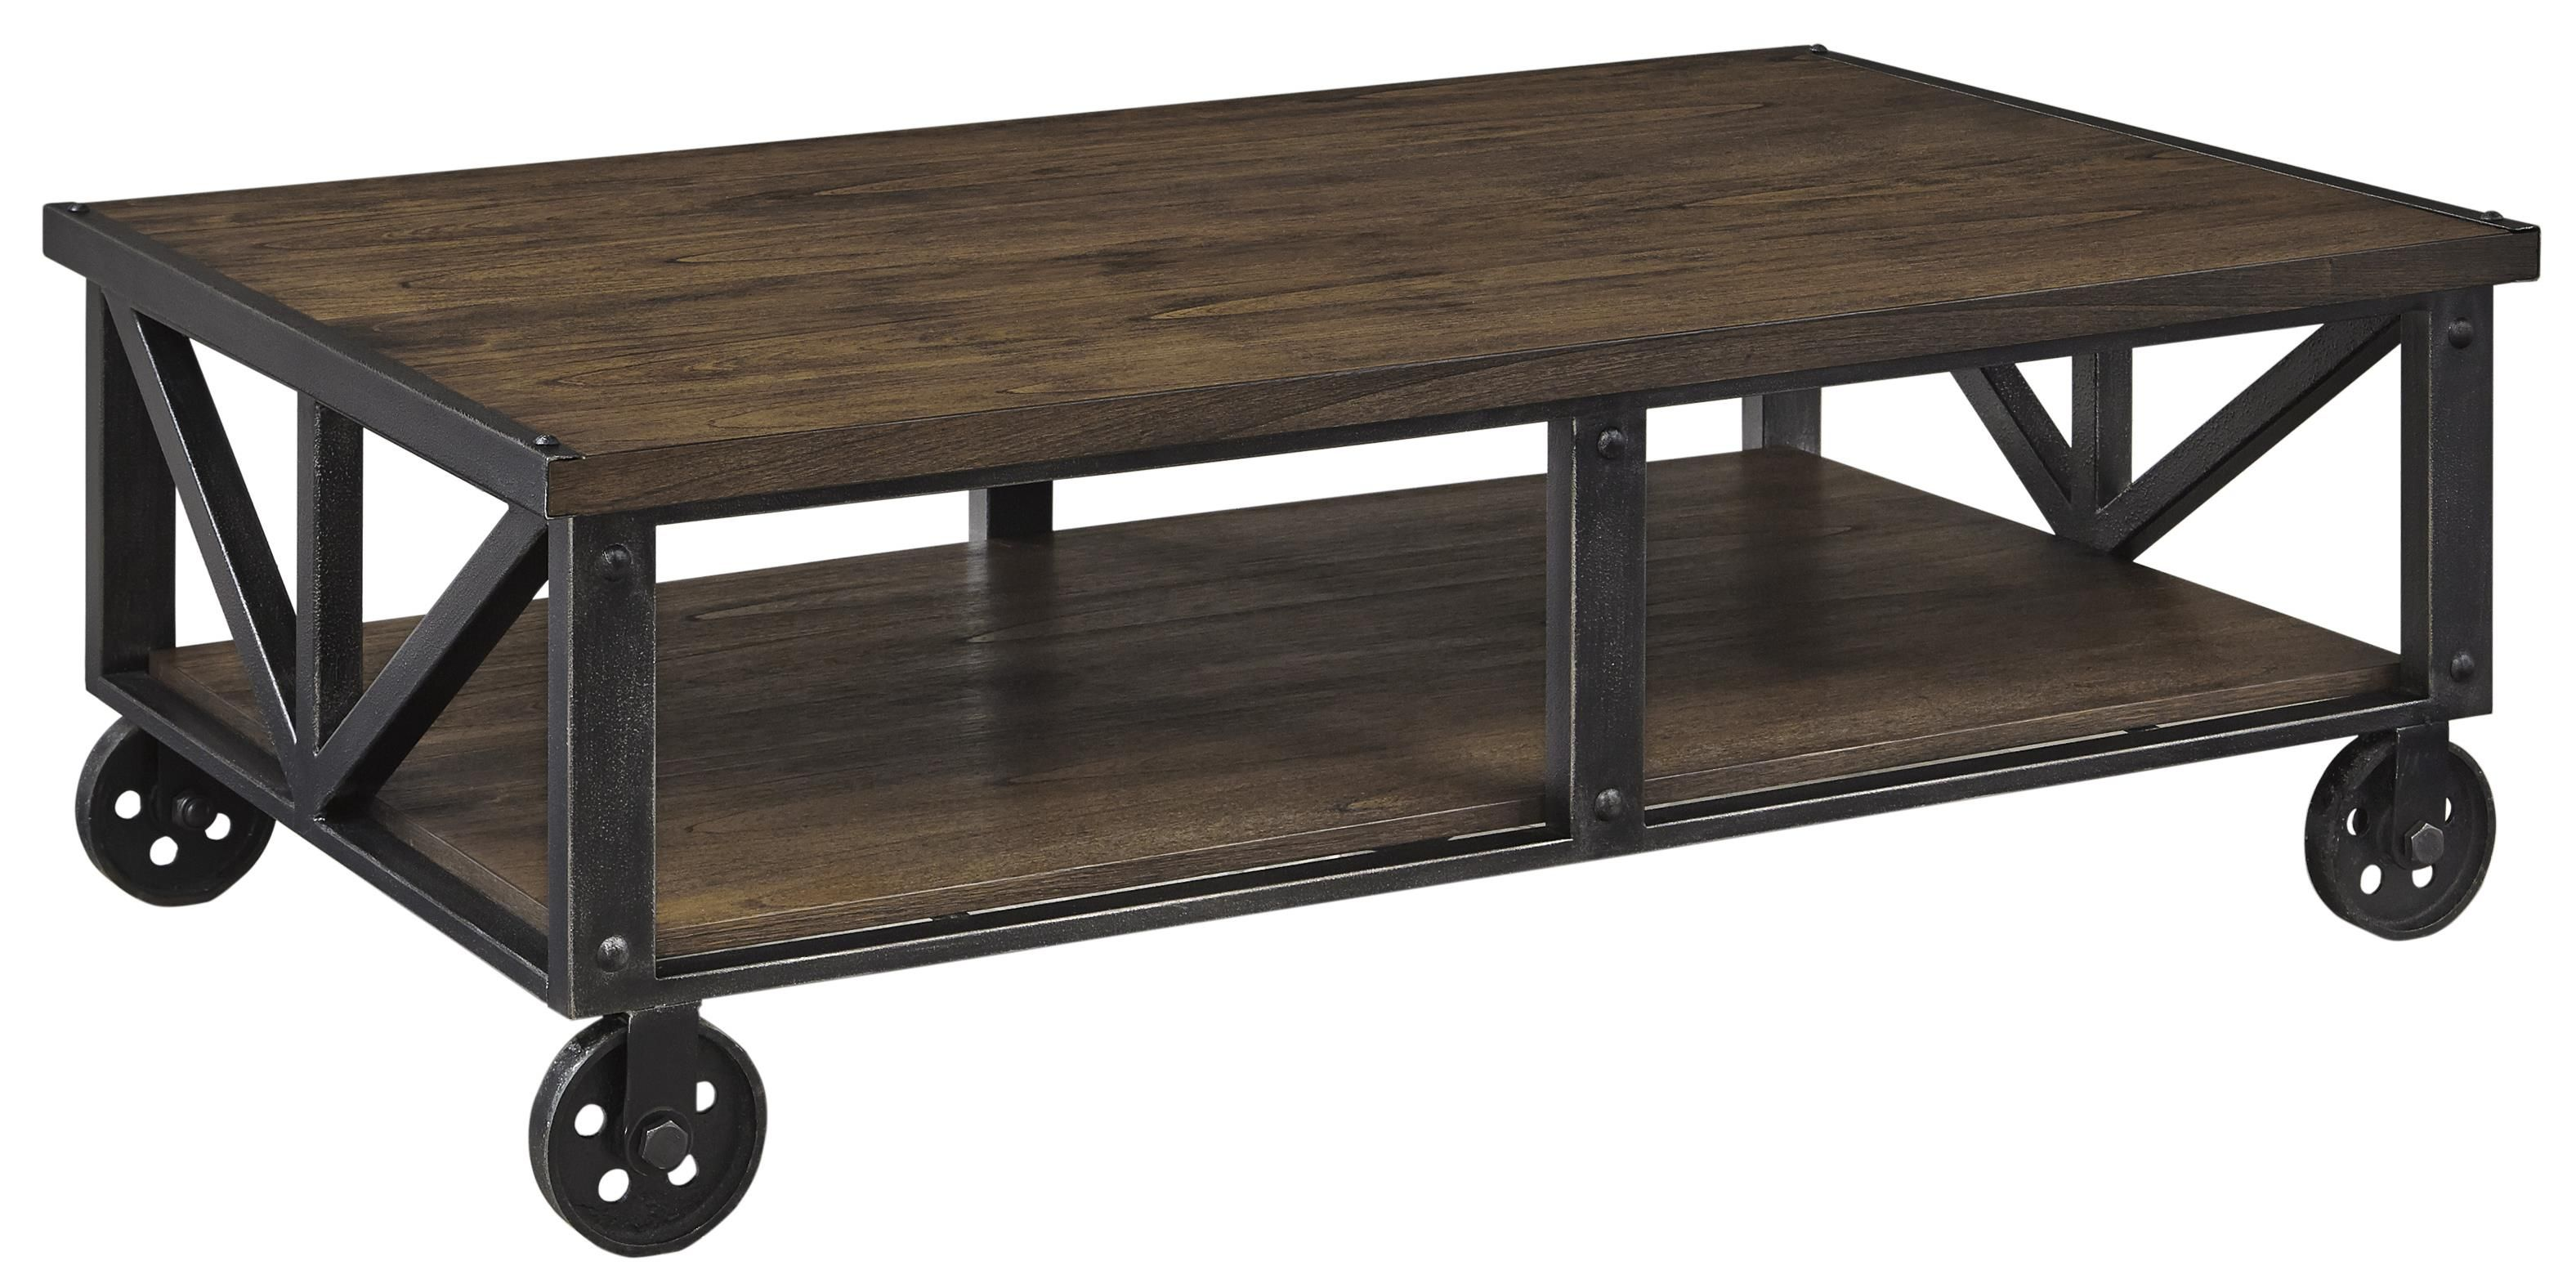 Zenfield Wood/Metal Rectangular Cocktail Table With Industrial Style Cart  Wheels By Ashley Signature Design